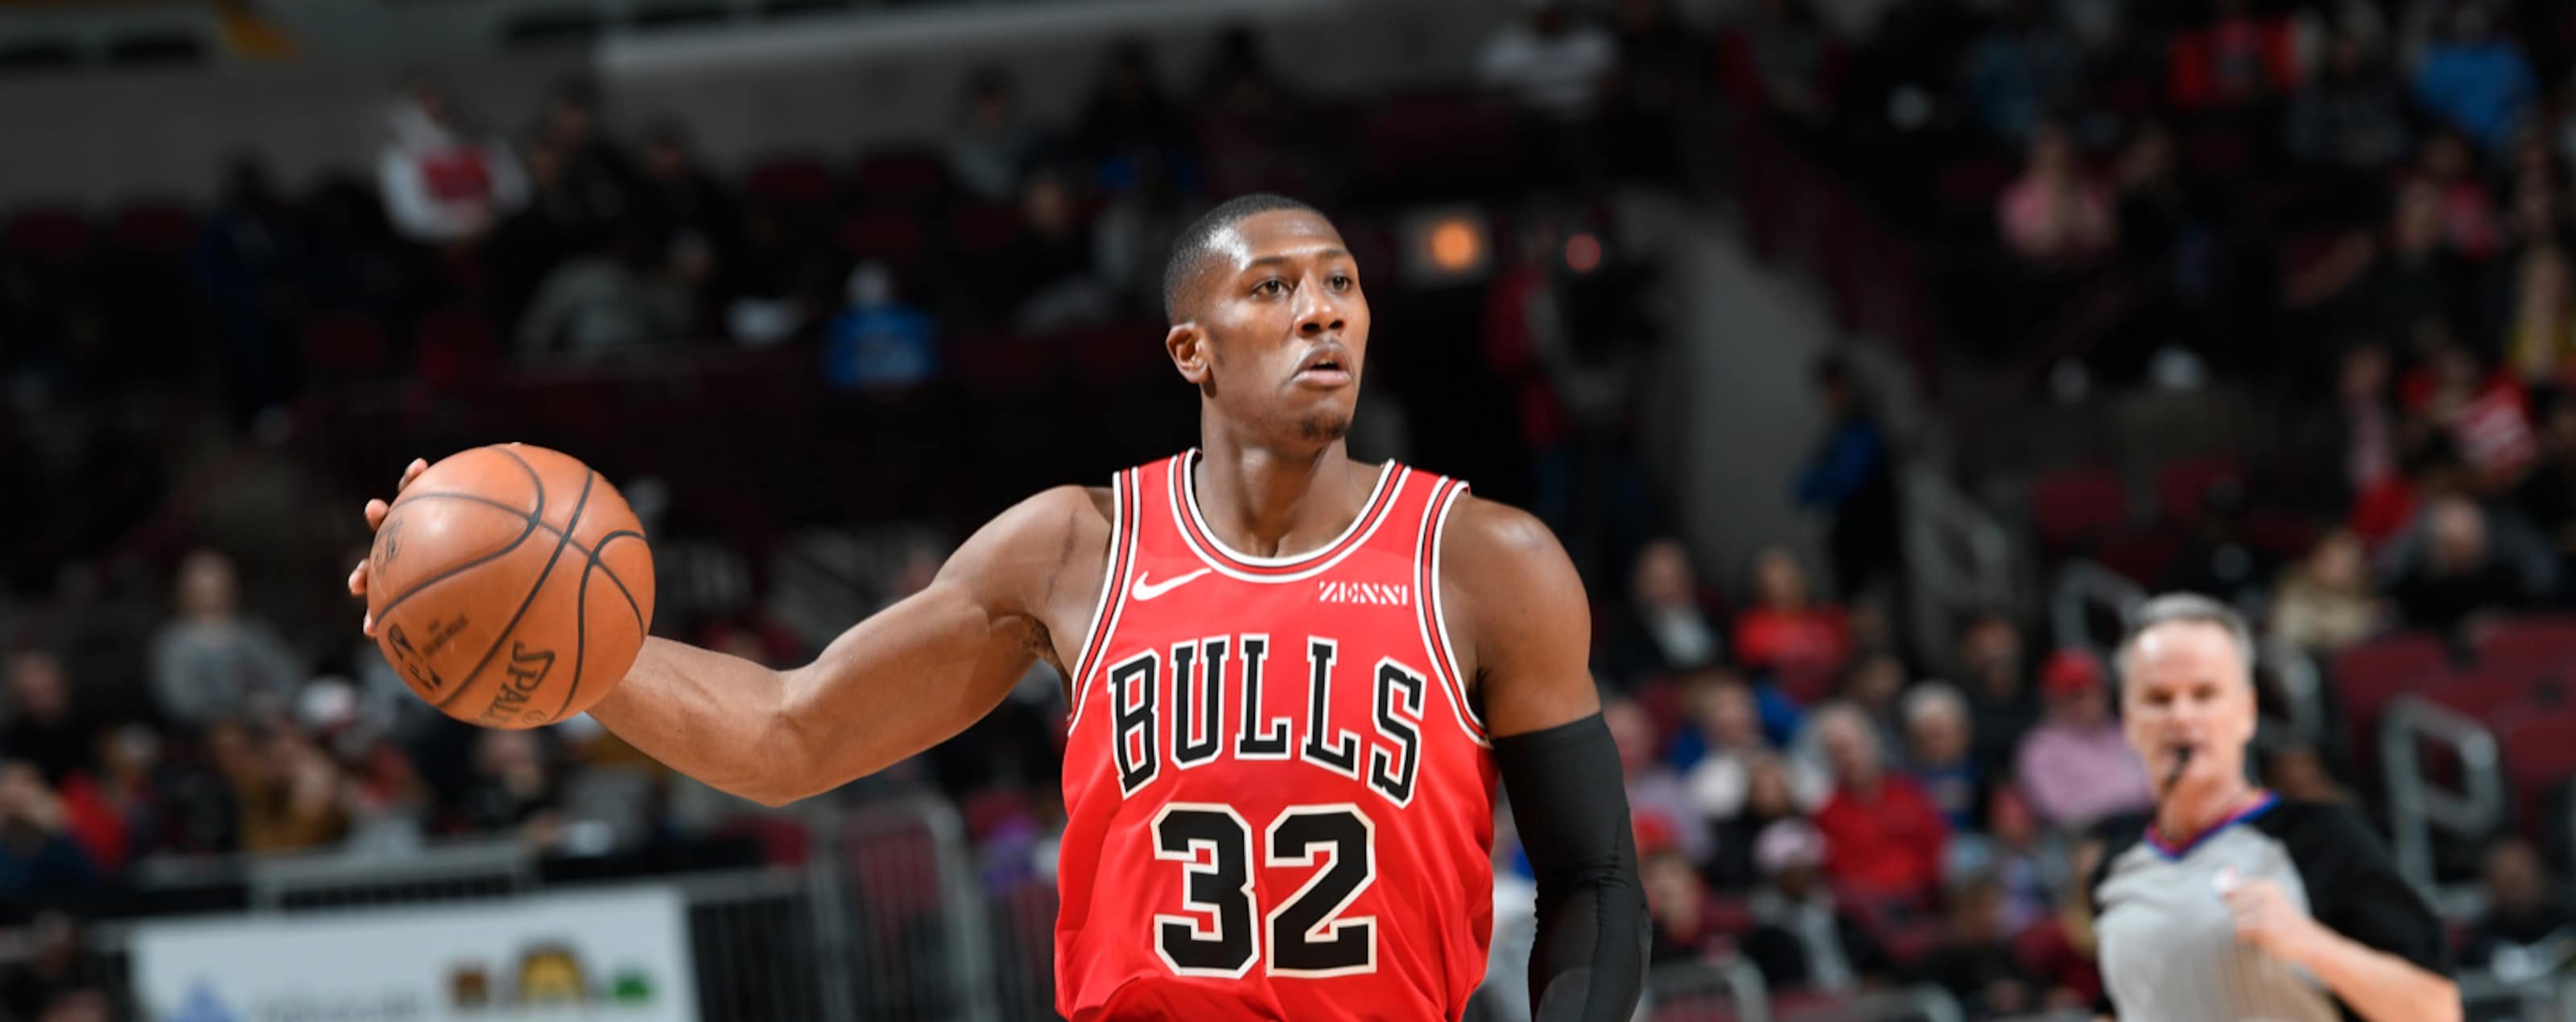 Kris Dunn dribbles the ball against the Washington Wizards.